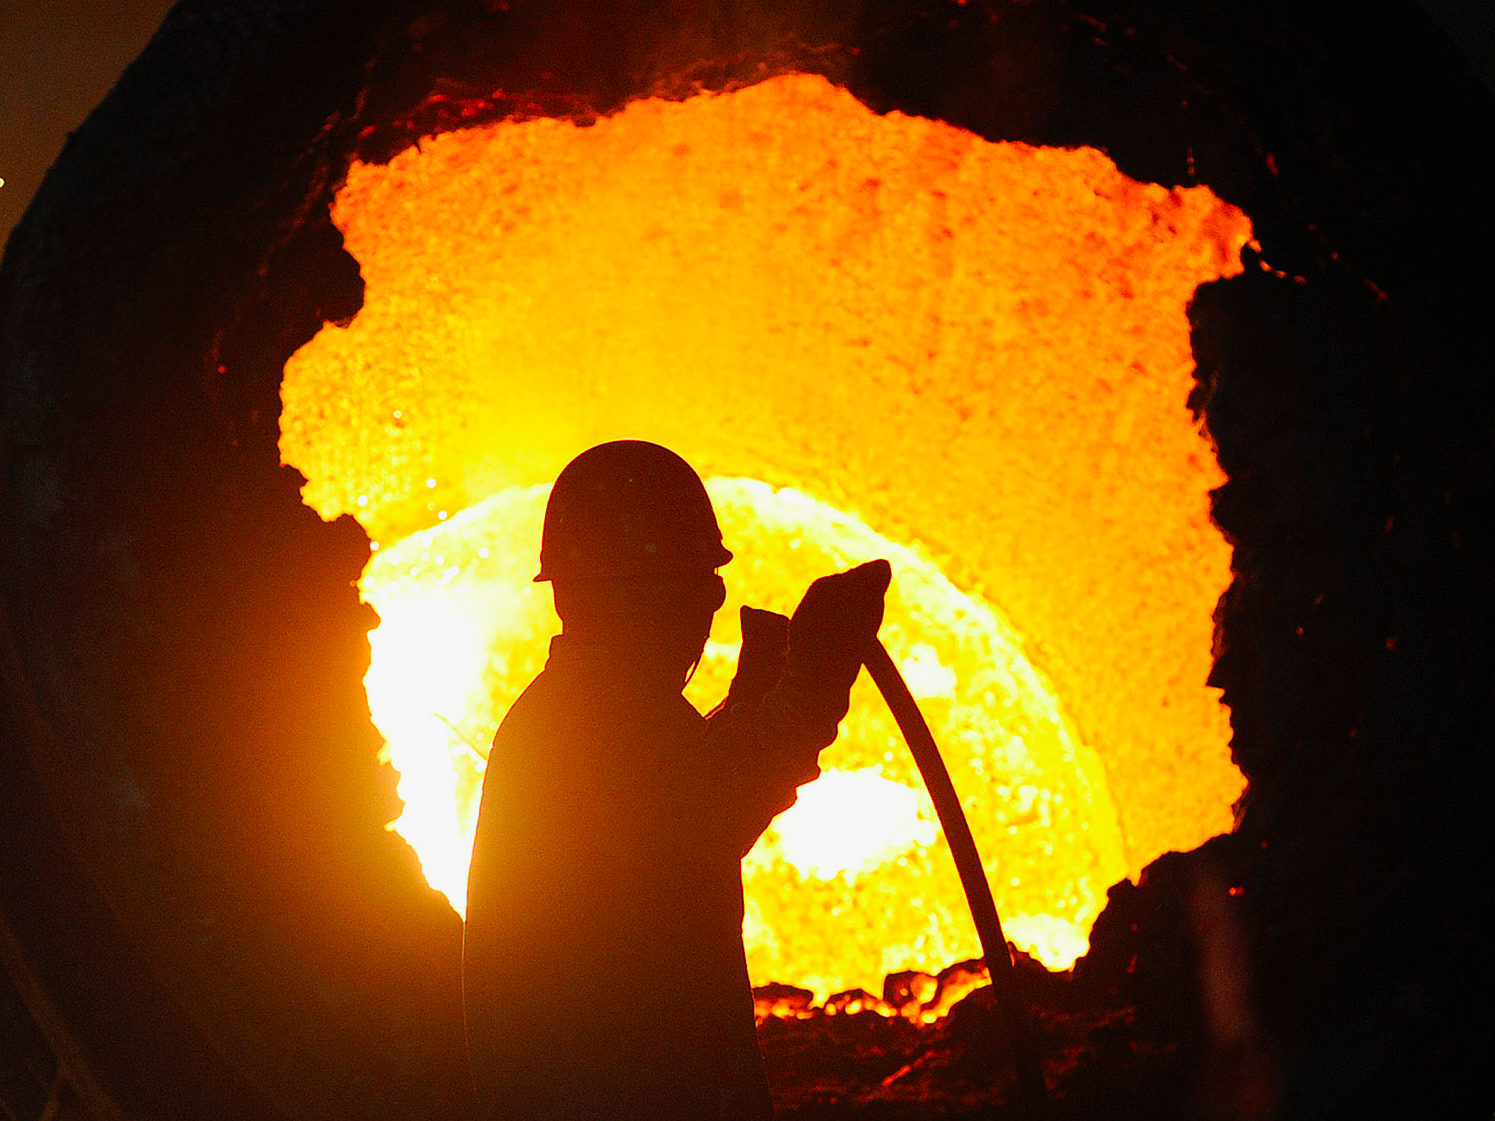 A worker operates a furnace at a steel plant in Hefei, Anhui province August 18, 2013. Momentum is growing in China to allow market forces to end a titanic capacity glut in heavy industry that a decade of state interventions has failed to resolve, according to speeches made by high-ranking officials this month at a closed-door event. The speeches indicate that China's reform-minded cabinet is considering a dose of deeper structural reform to remedy bloated, inefficient and debt-laden sectors such as steel.